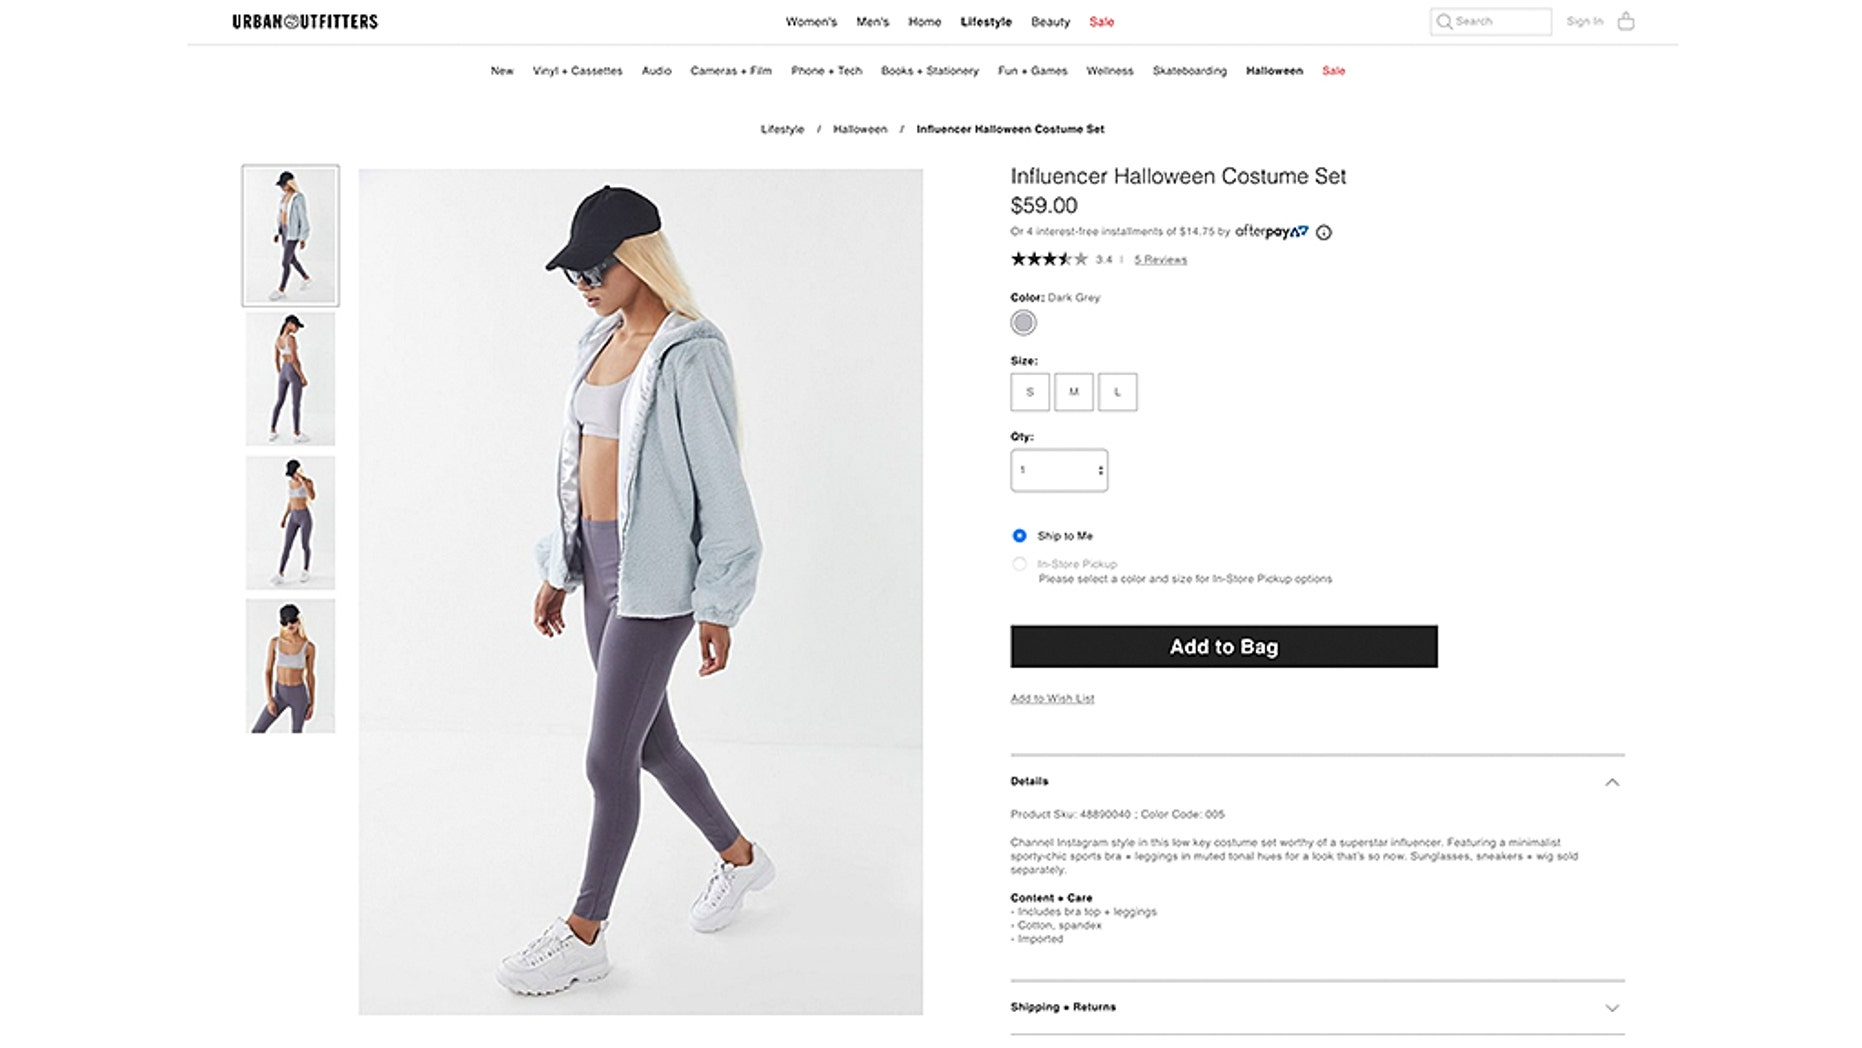 urban outfitters selling 'influencer' halloween costume that's just